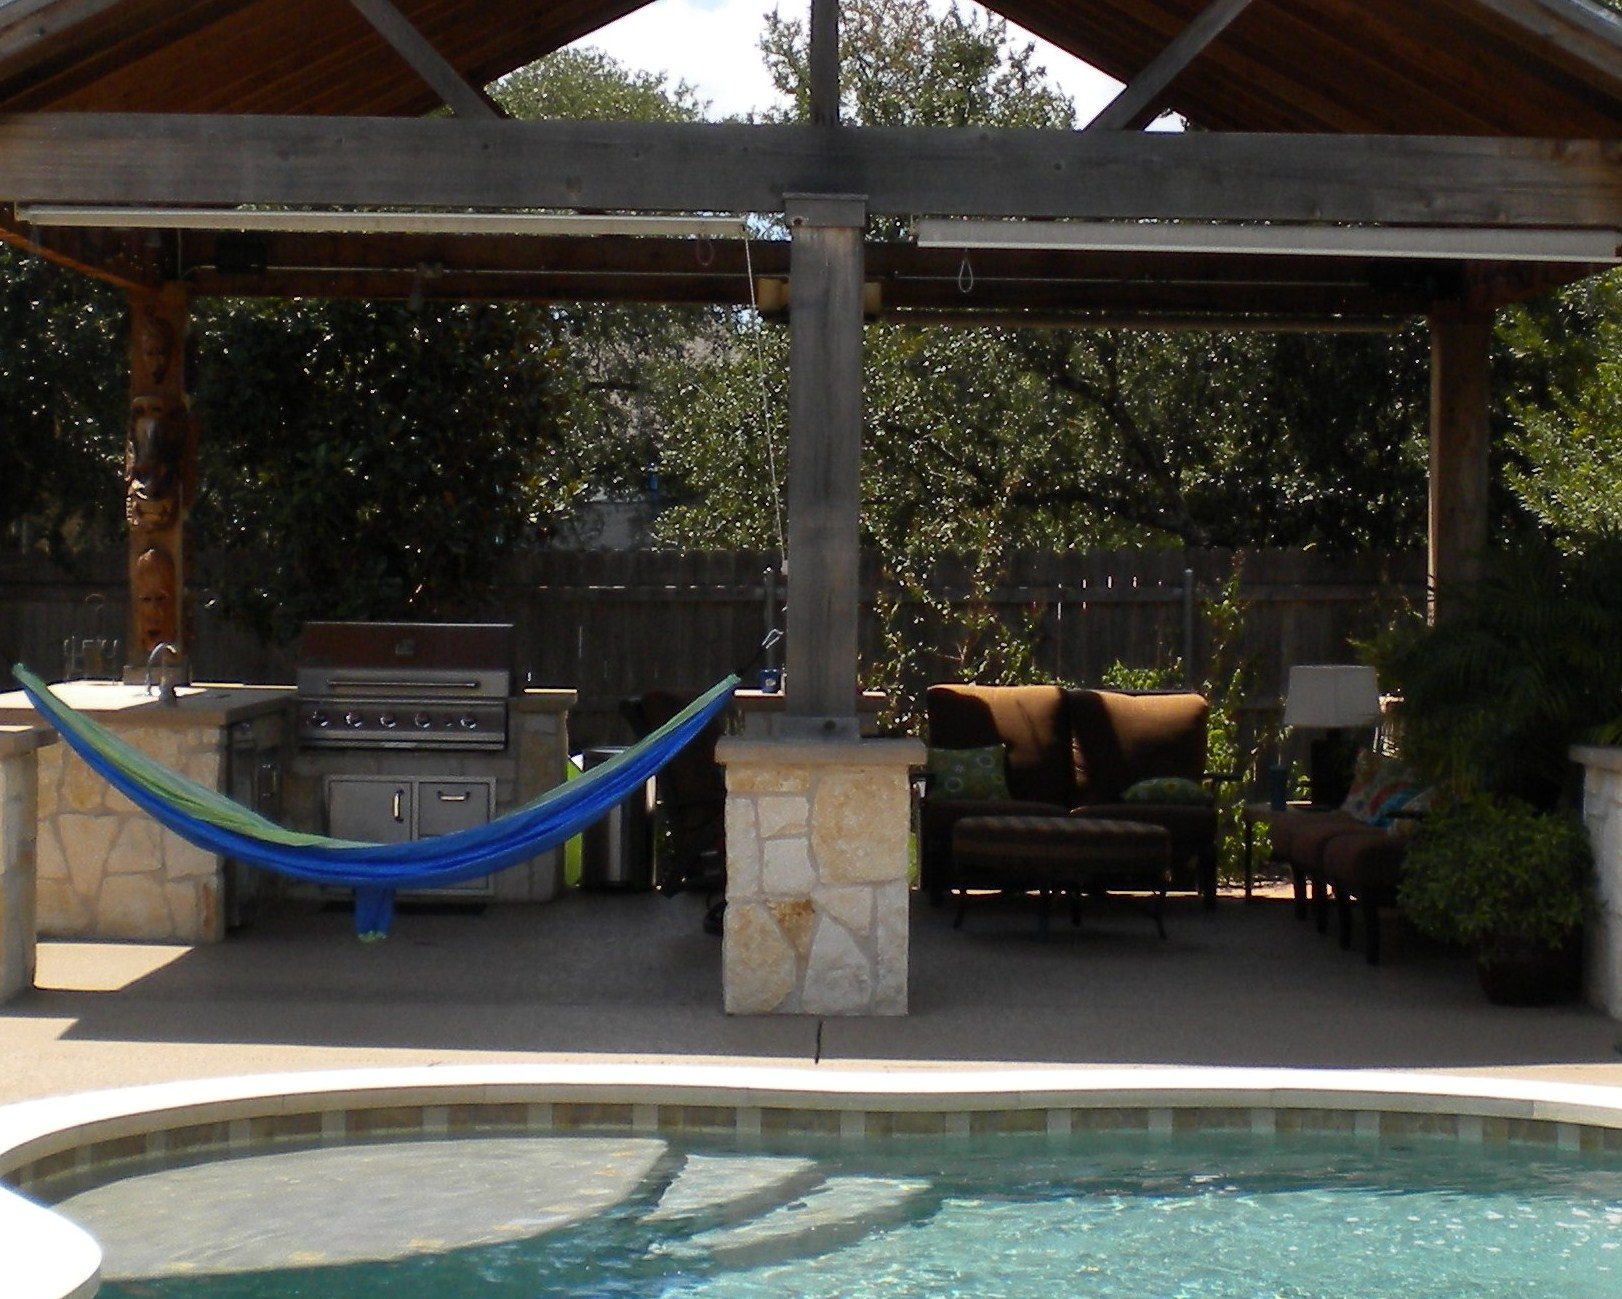 Dallas outdoor living photos plano patios for Pool show dallas